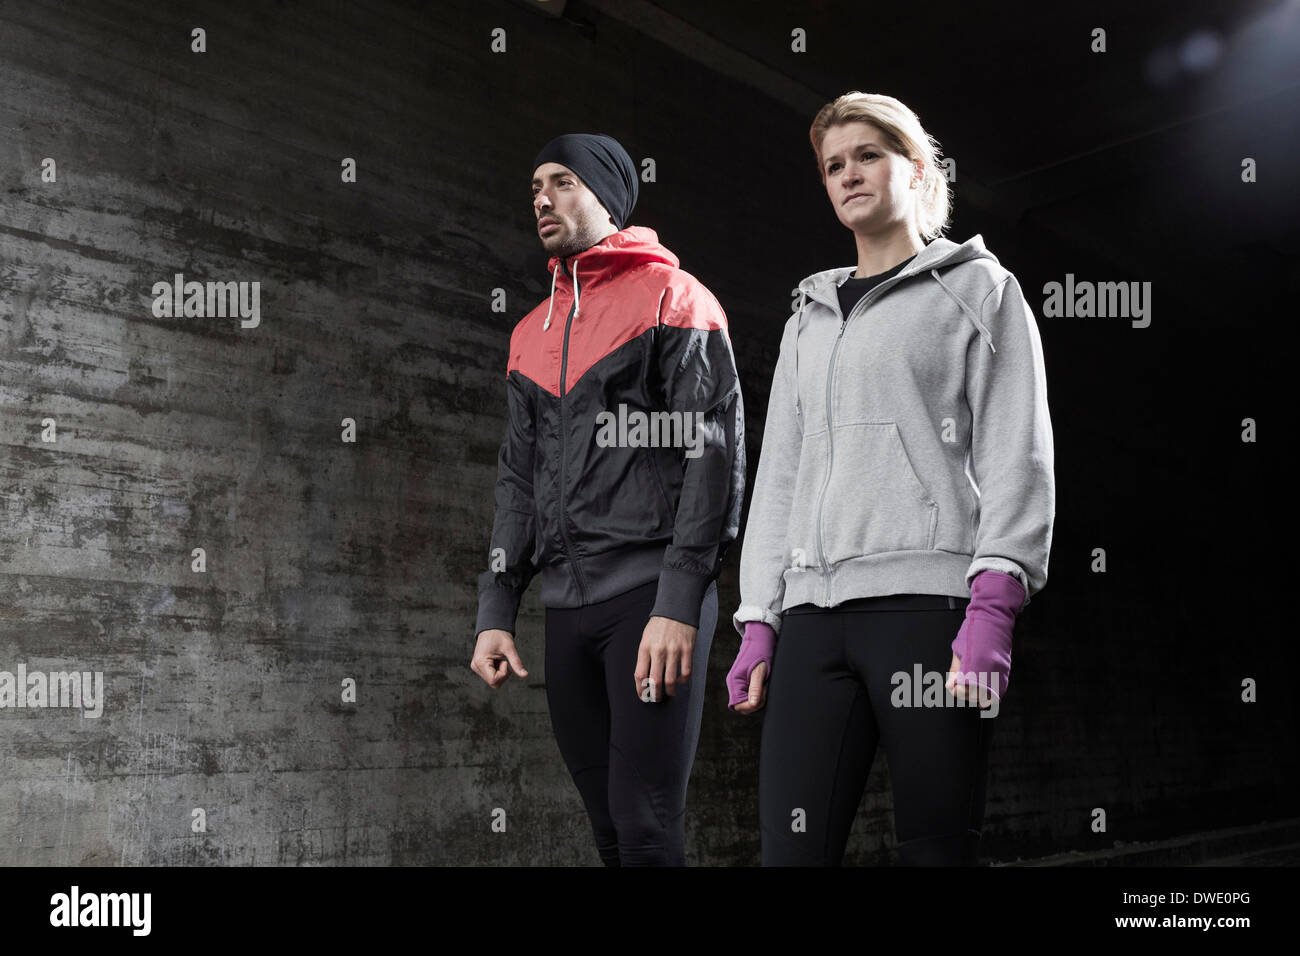 Sporty couple standing in tunnel Stock Photo